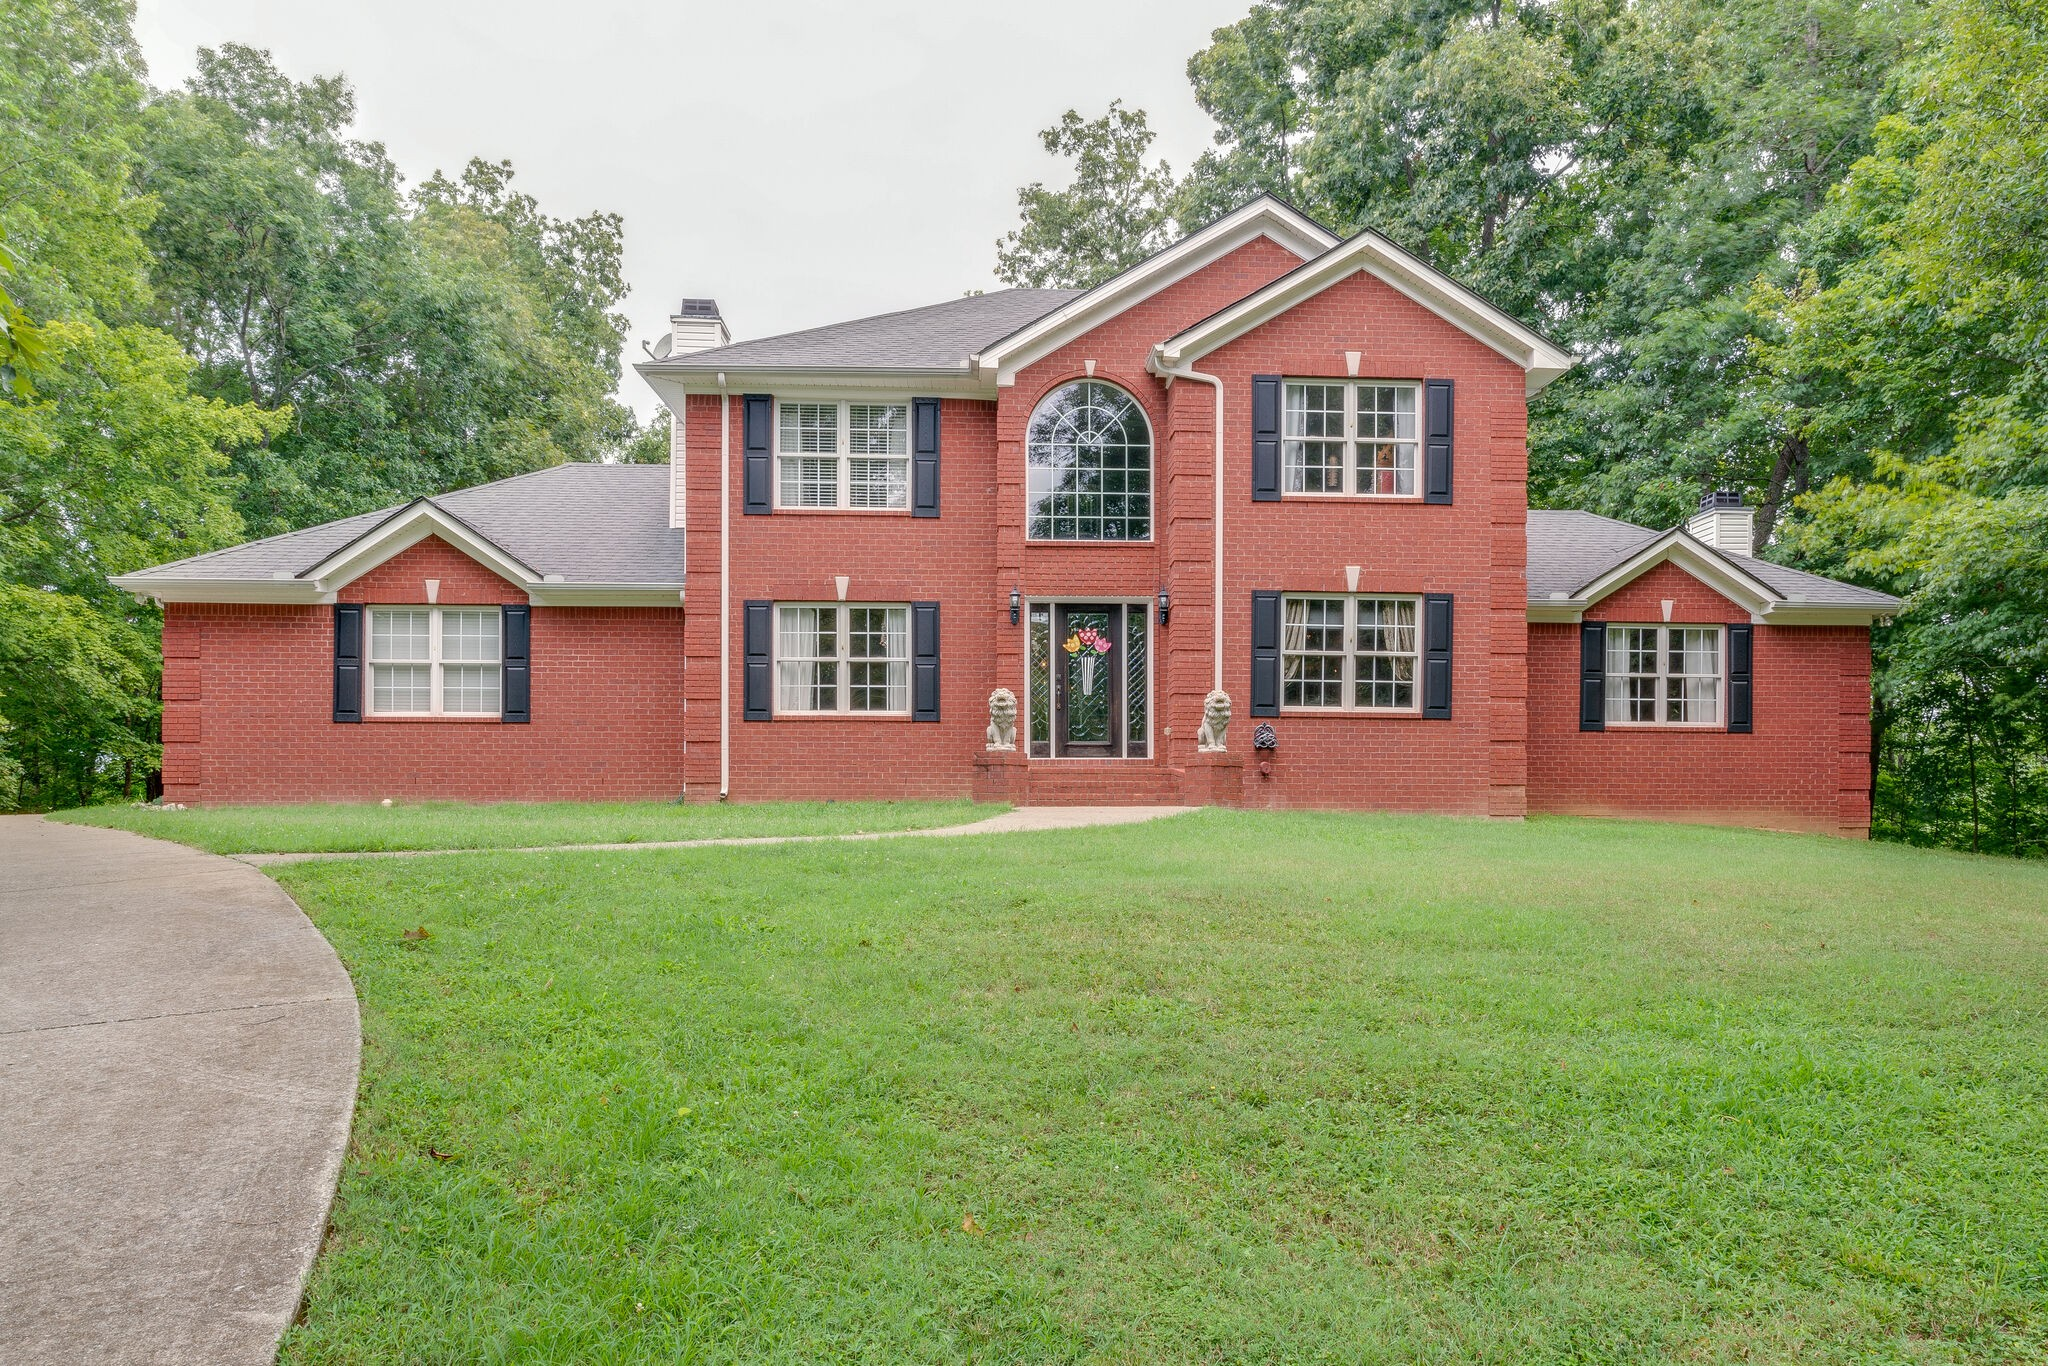 2239 Ingram Rd Property Photo - Whites Creek, TN real estate listing